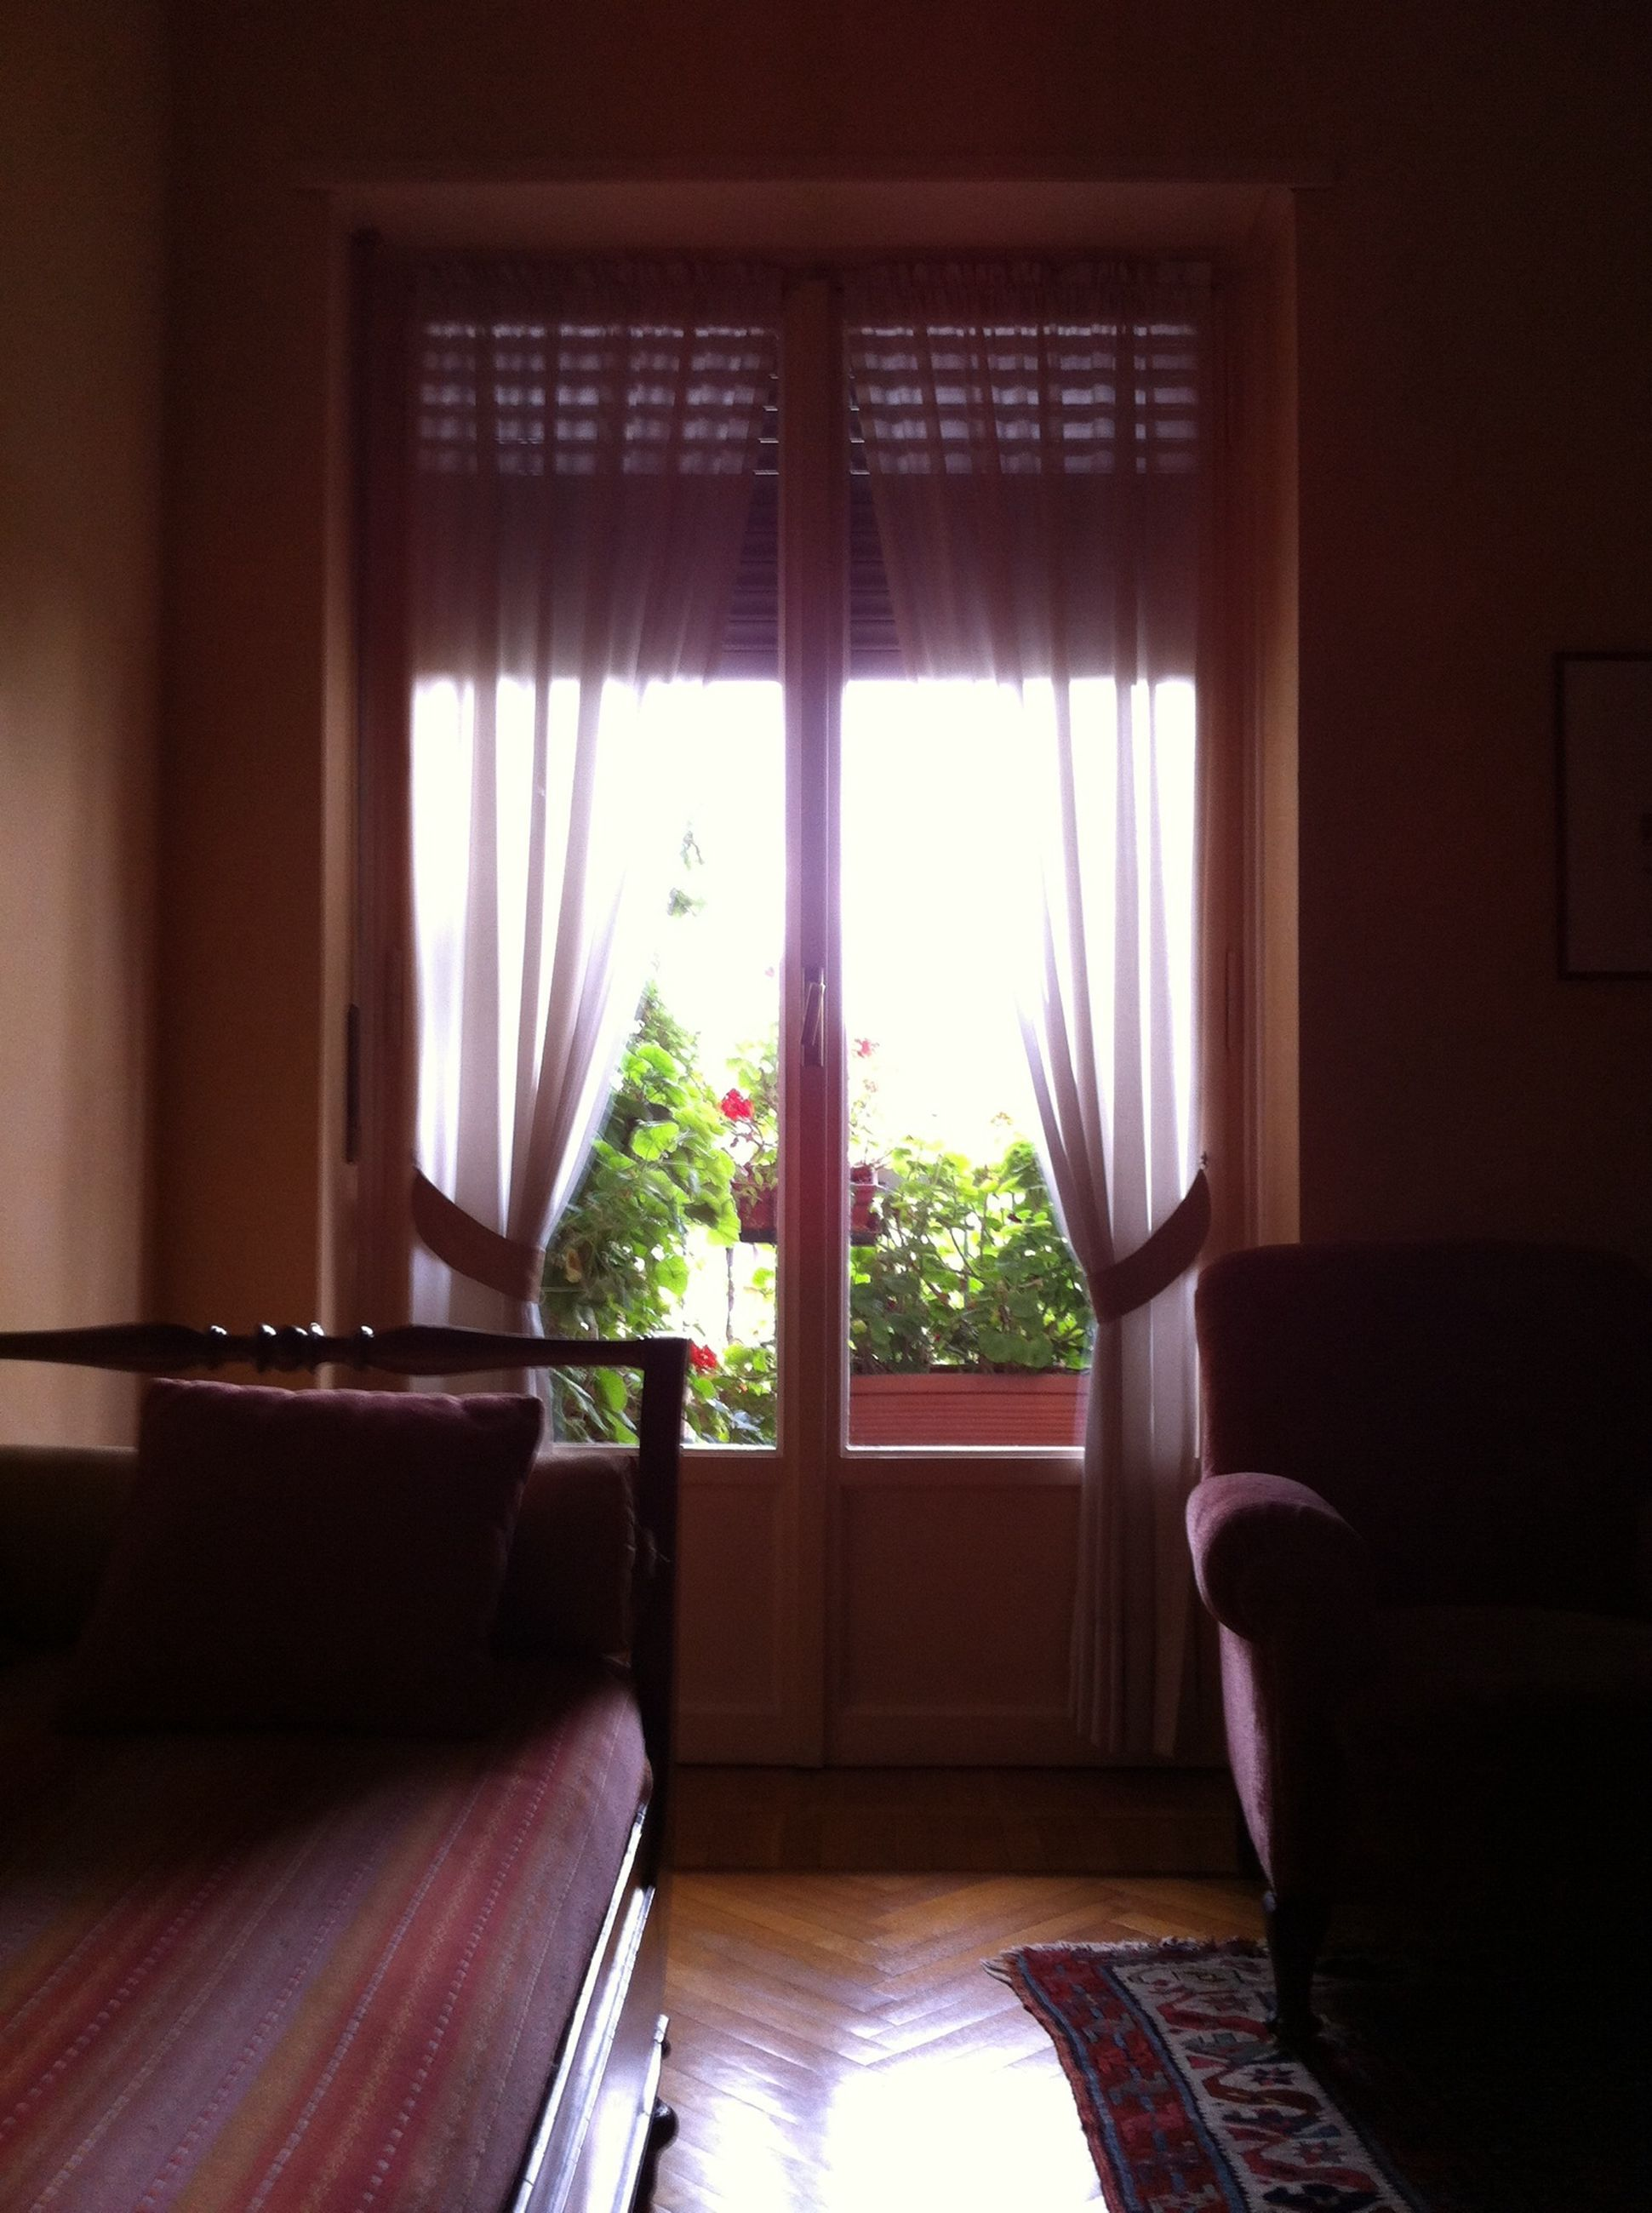 window, indoors, glass - material, home interior, house, transparent, curtain, absence, architecture, chair, built structure, potted plant, window sill, sunlight, open, table, empty, day, door, no people